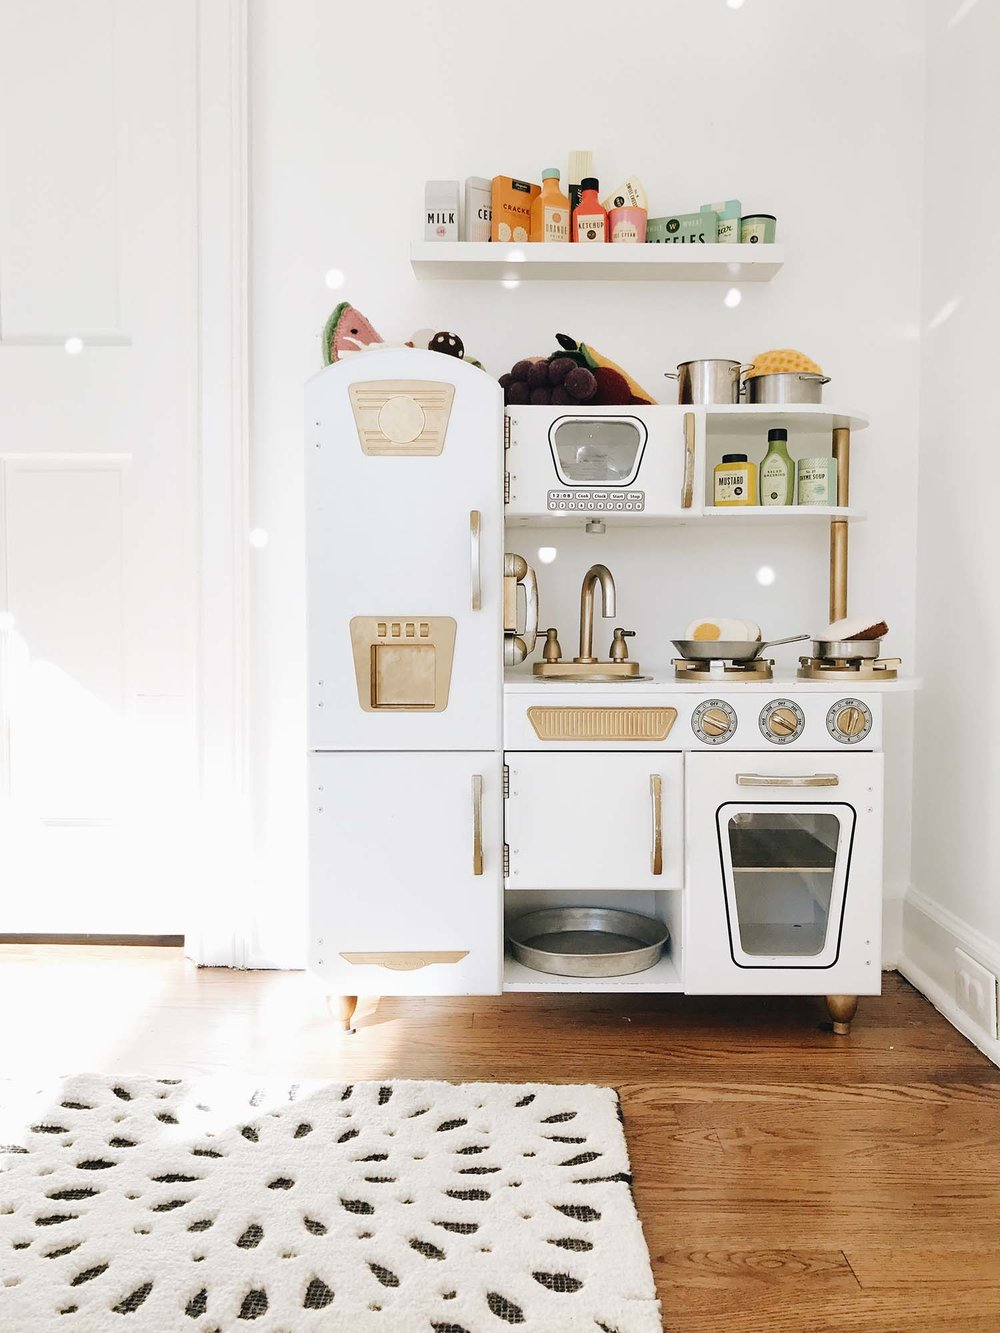 8 OF THE BEST PLAY KITCHENS FOR TODDLERS — WINTER DAISY interiors ...